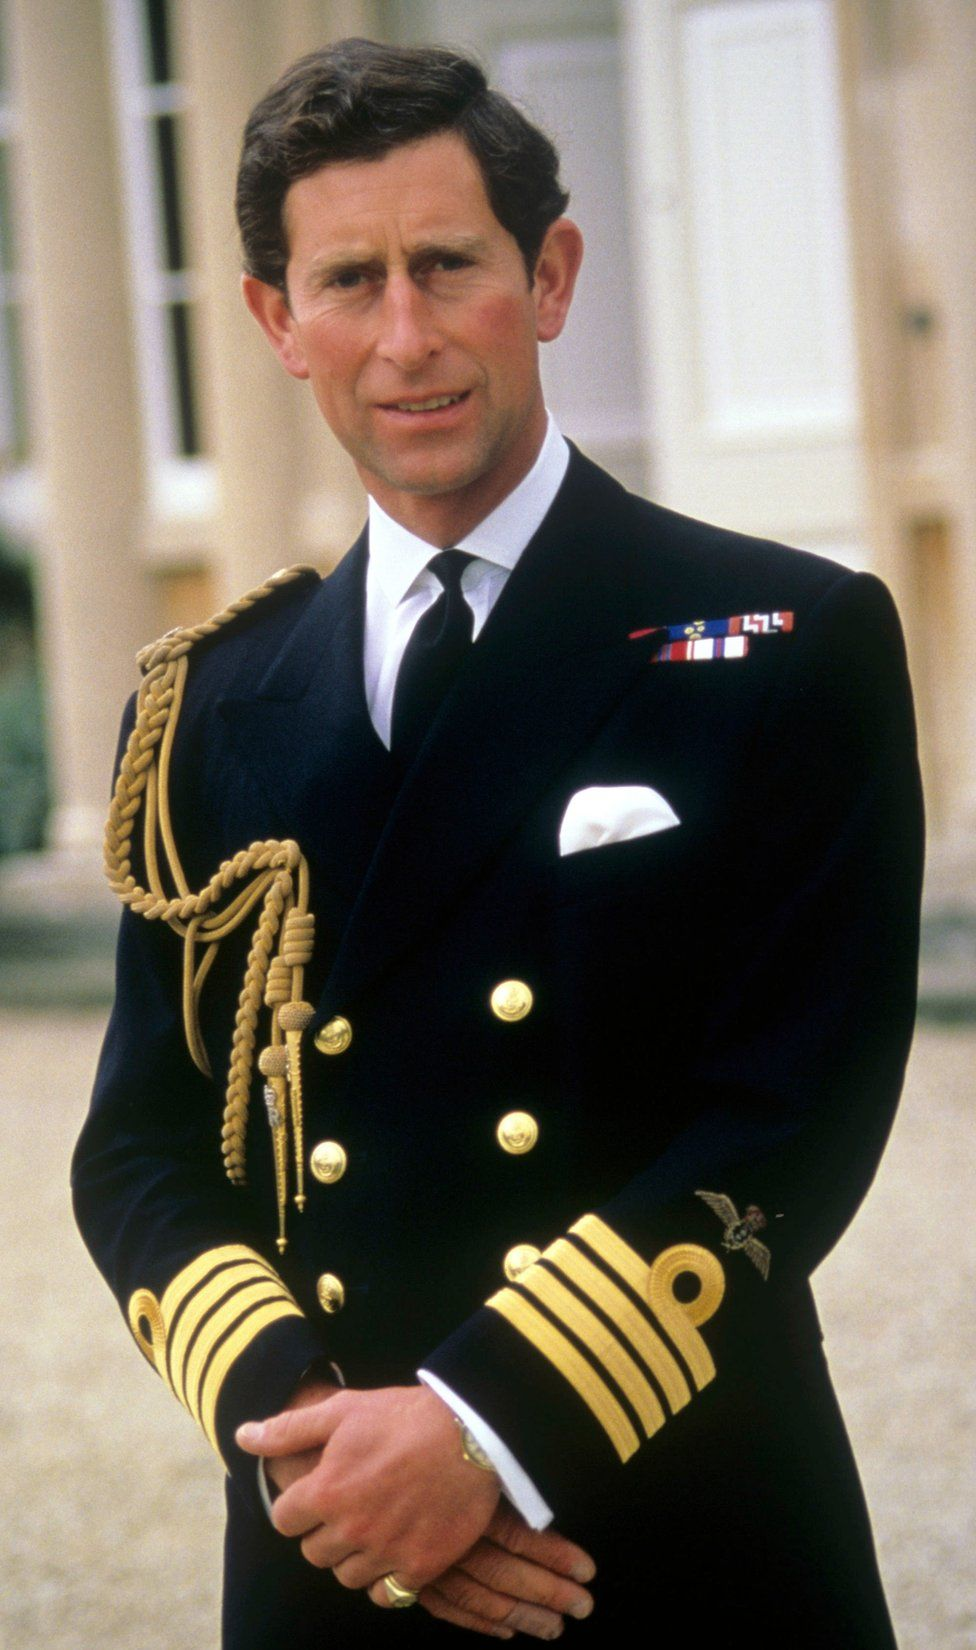 Prince of Wales wearing his new Royal Navy captain's uniform